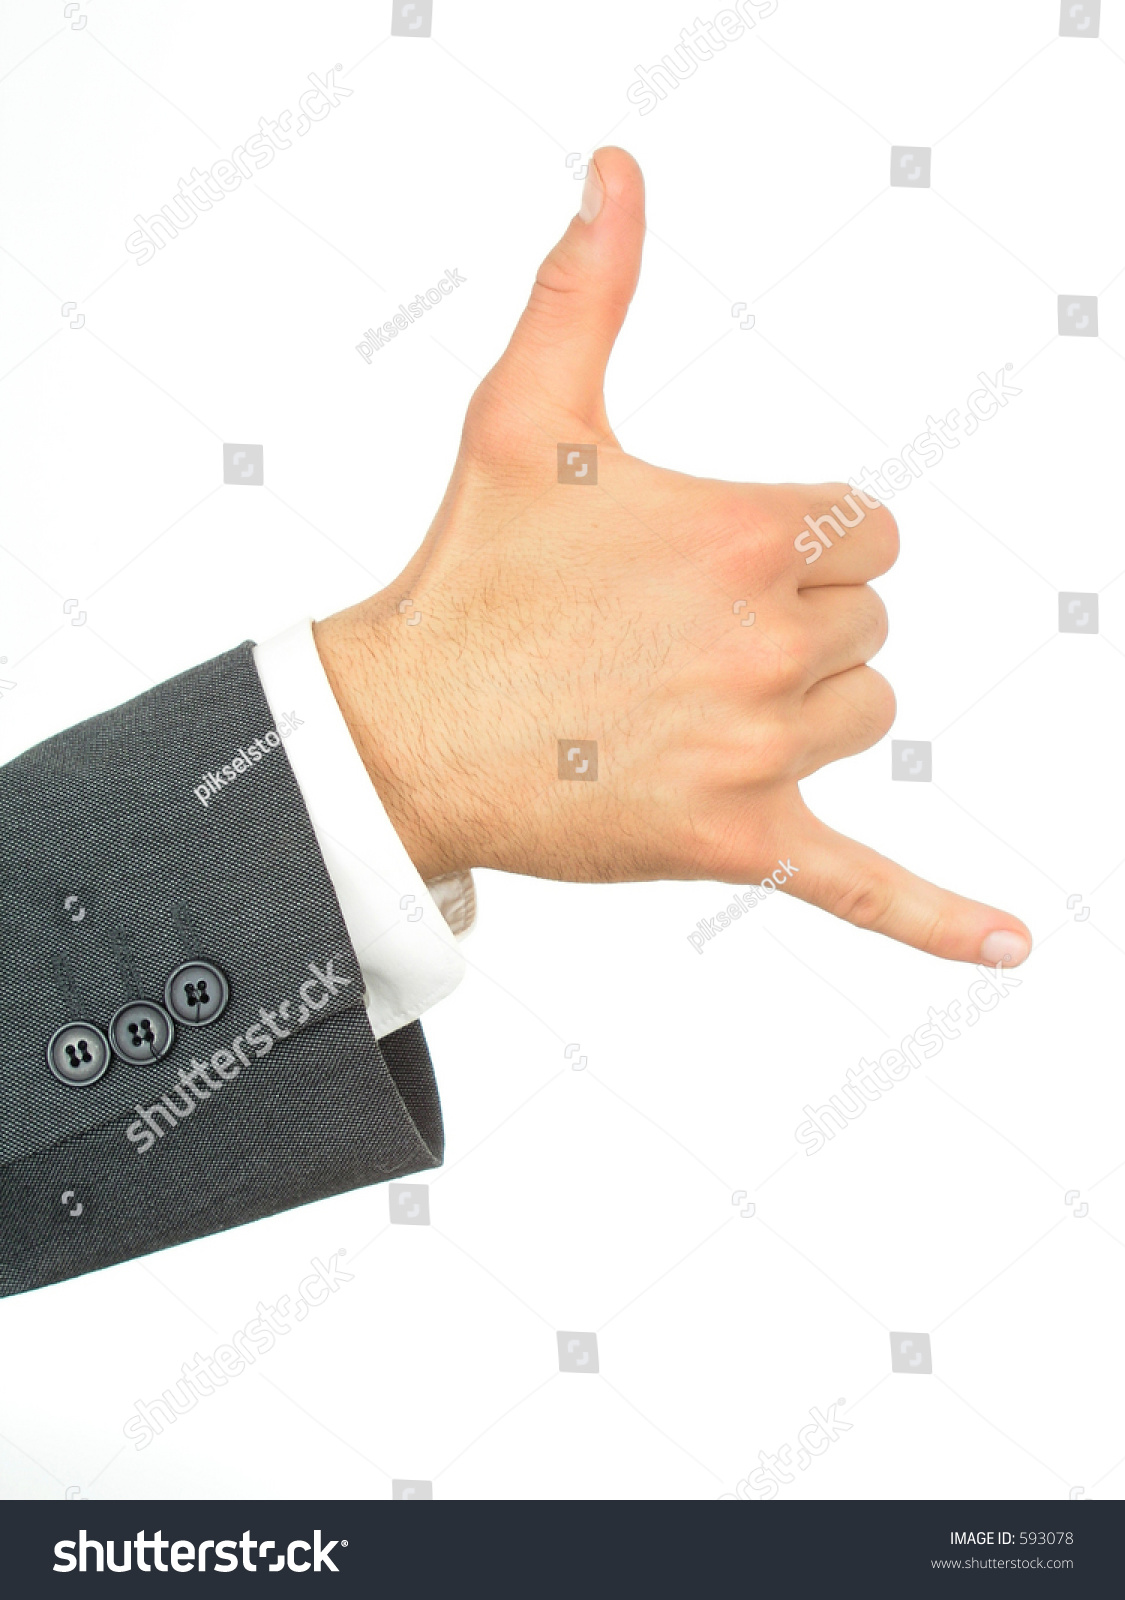 Call Me Gesture Stock Photo 593078 : Shutterstock